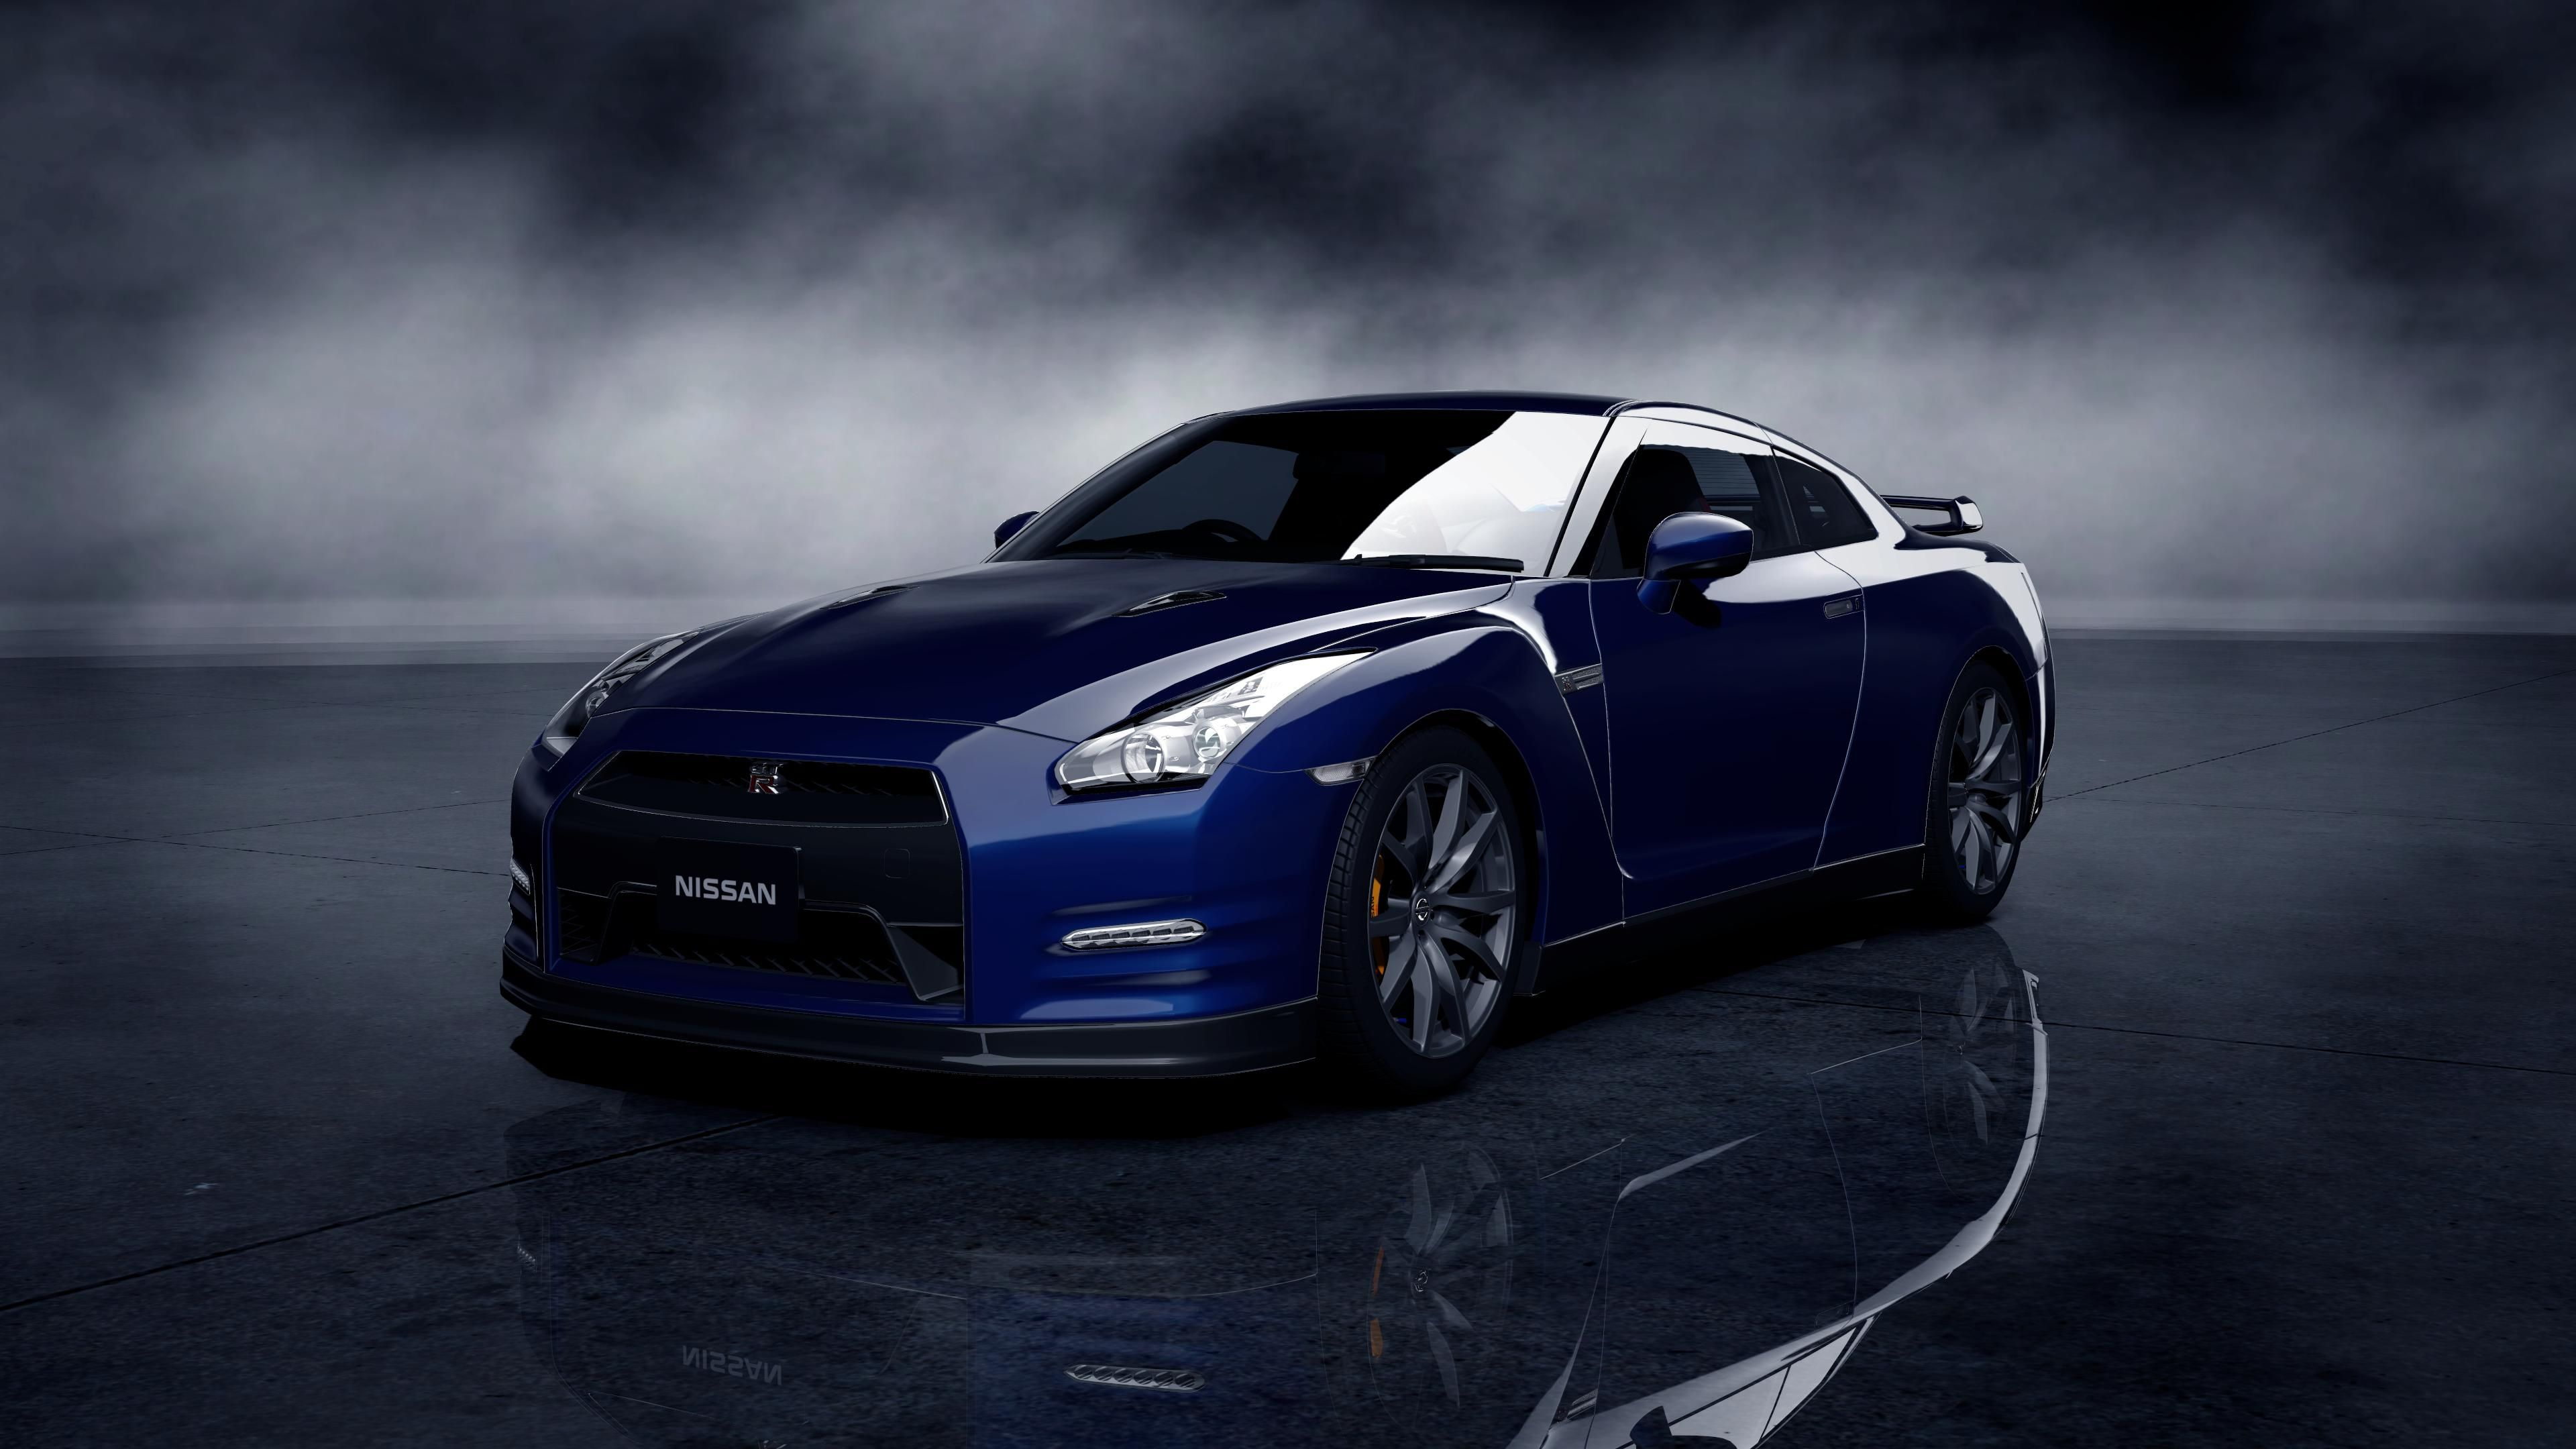 Find Out Nissan Gtr Nismo Wallpapers Widescreen As Wallpaper Hd On Sotoak Com Iphone Android Wallpaper Nissan Gtr Nissan Gtr Nissan Gtr Nismo Gtr Nismo